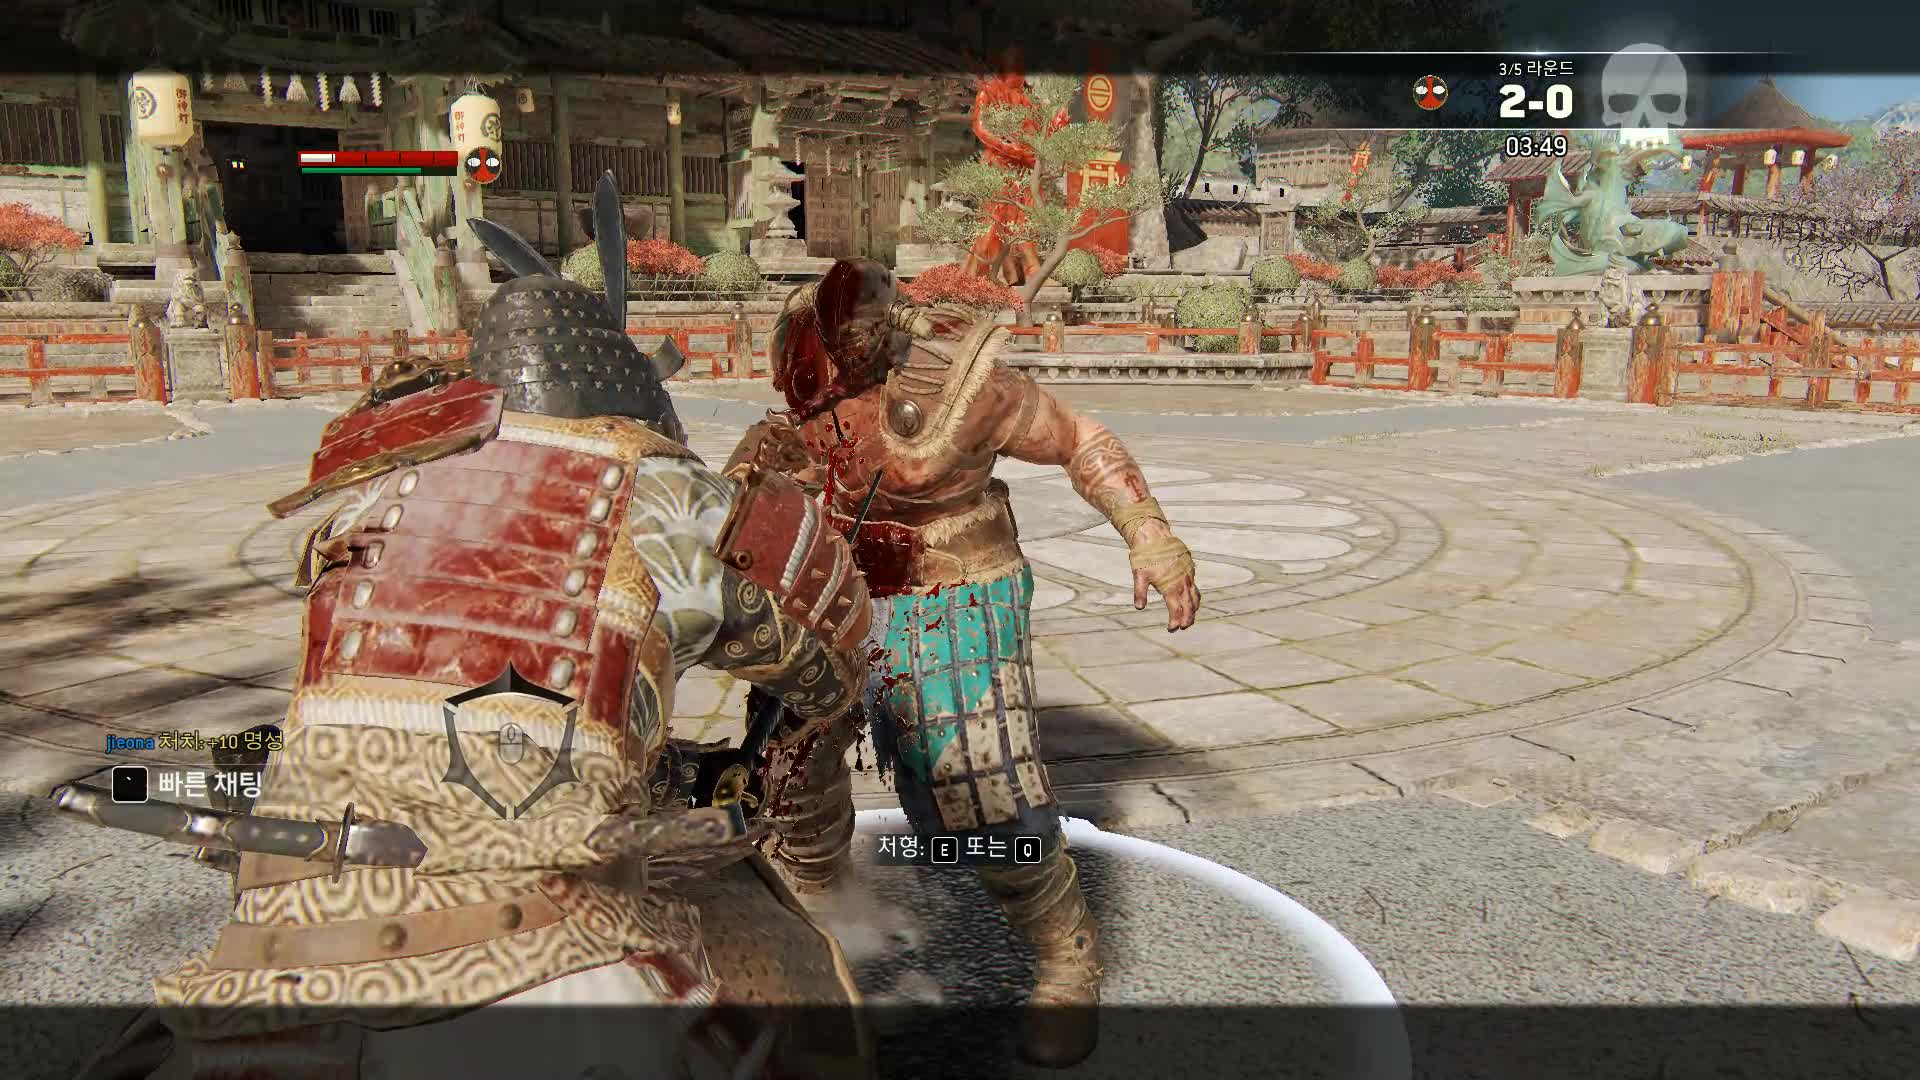 forhonor, For Honor 2019.04.18 - 22.07.38.08.DVR GIFs